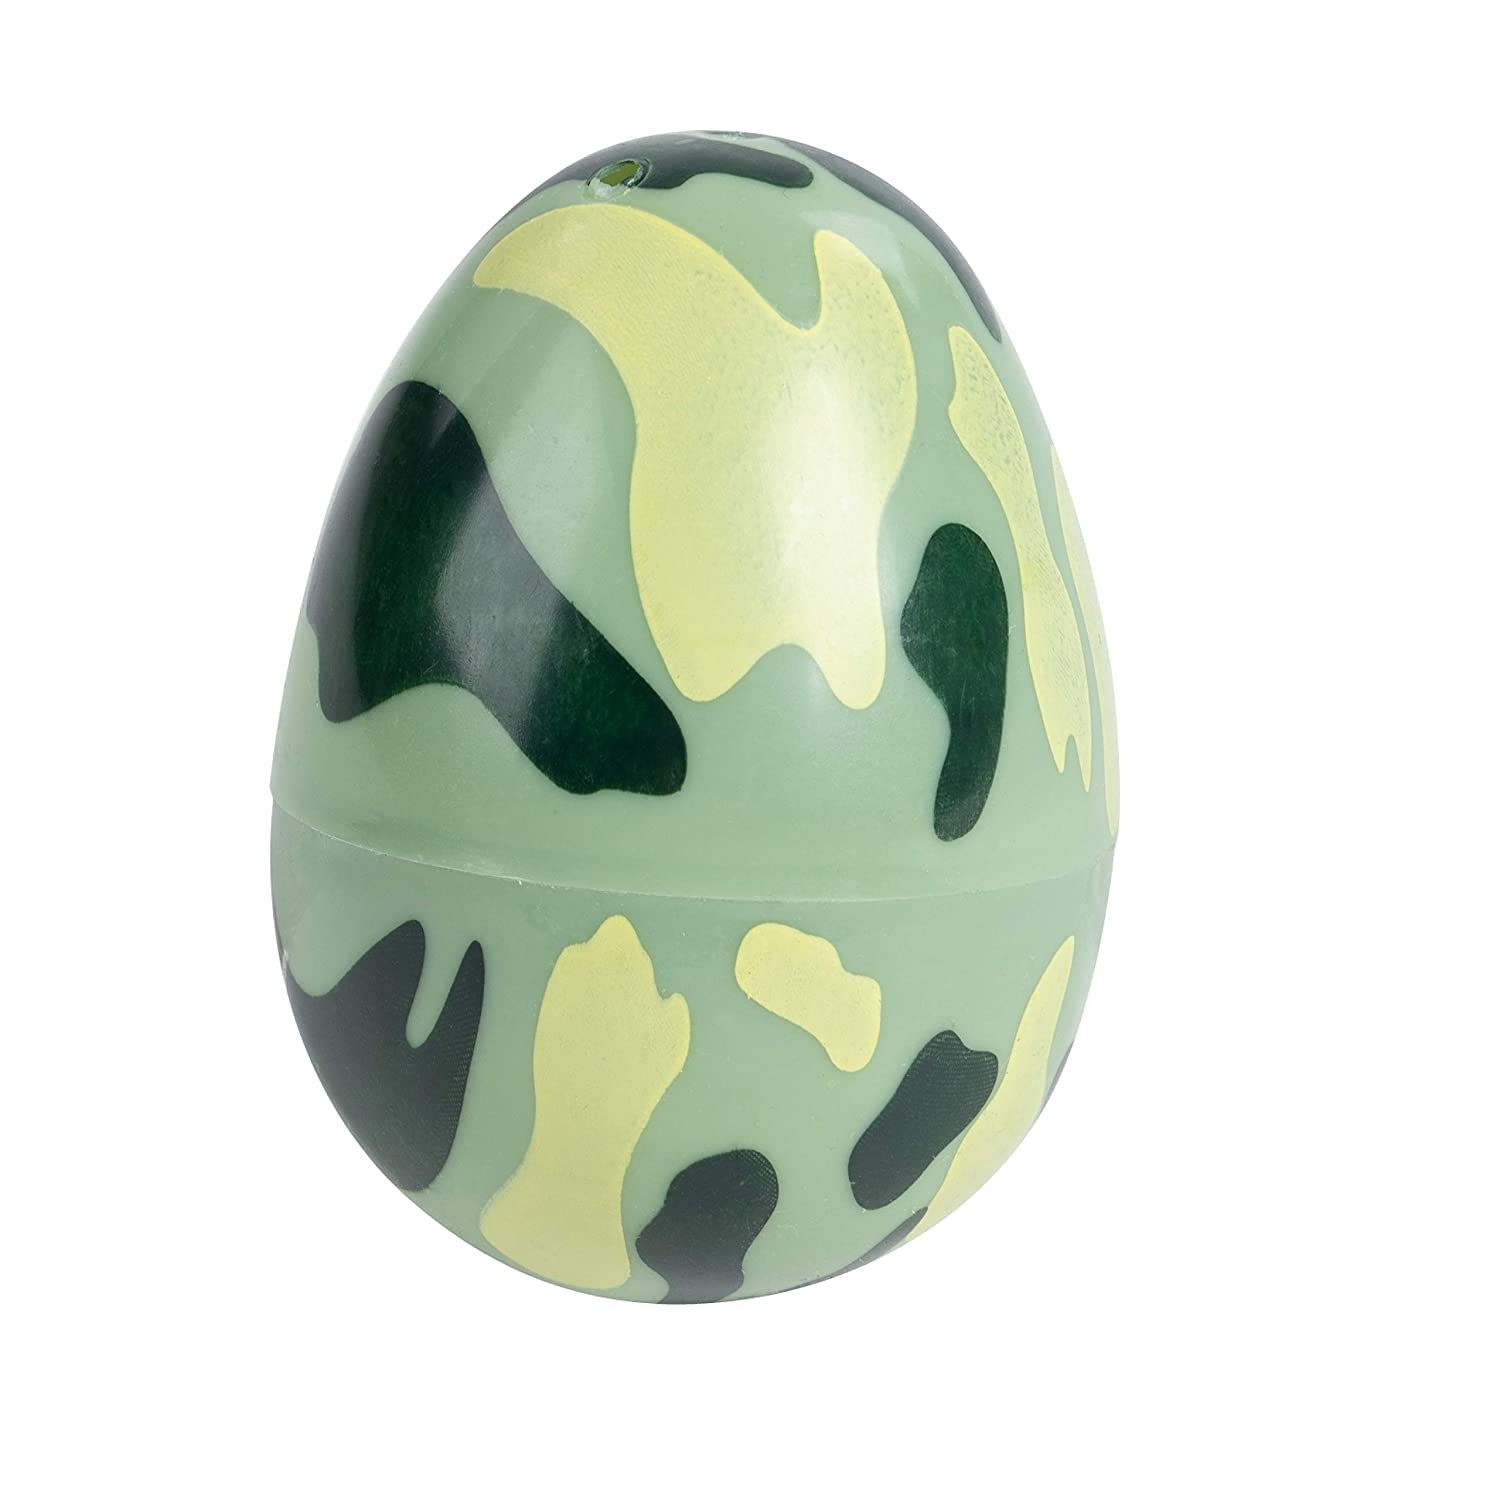 Juvale 48-Count Plastic Easter Eggs Camouflage Surprise Party Favor Eggs with Hinge Closure 1.6 x 2.3 x 1.6 Inches